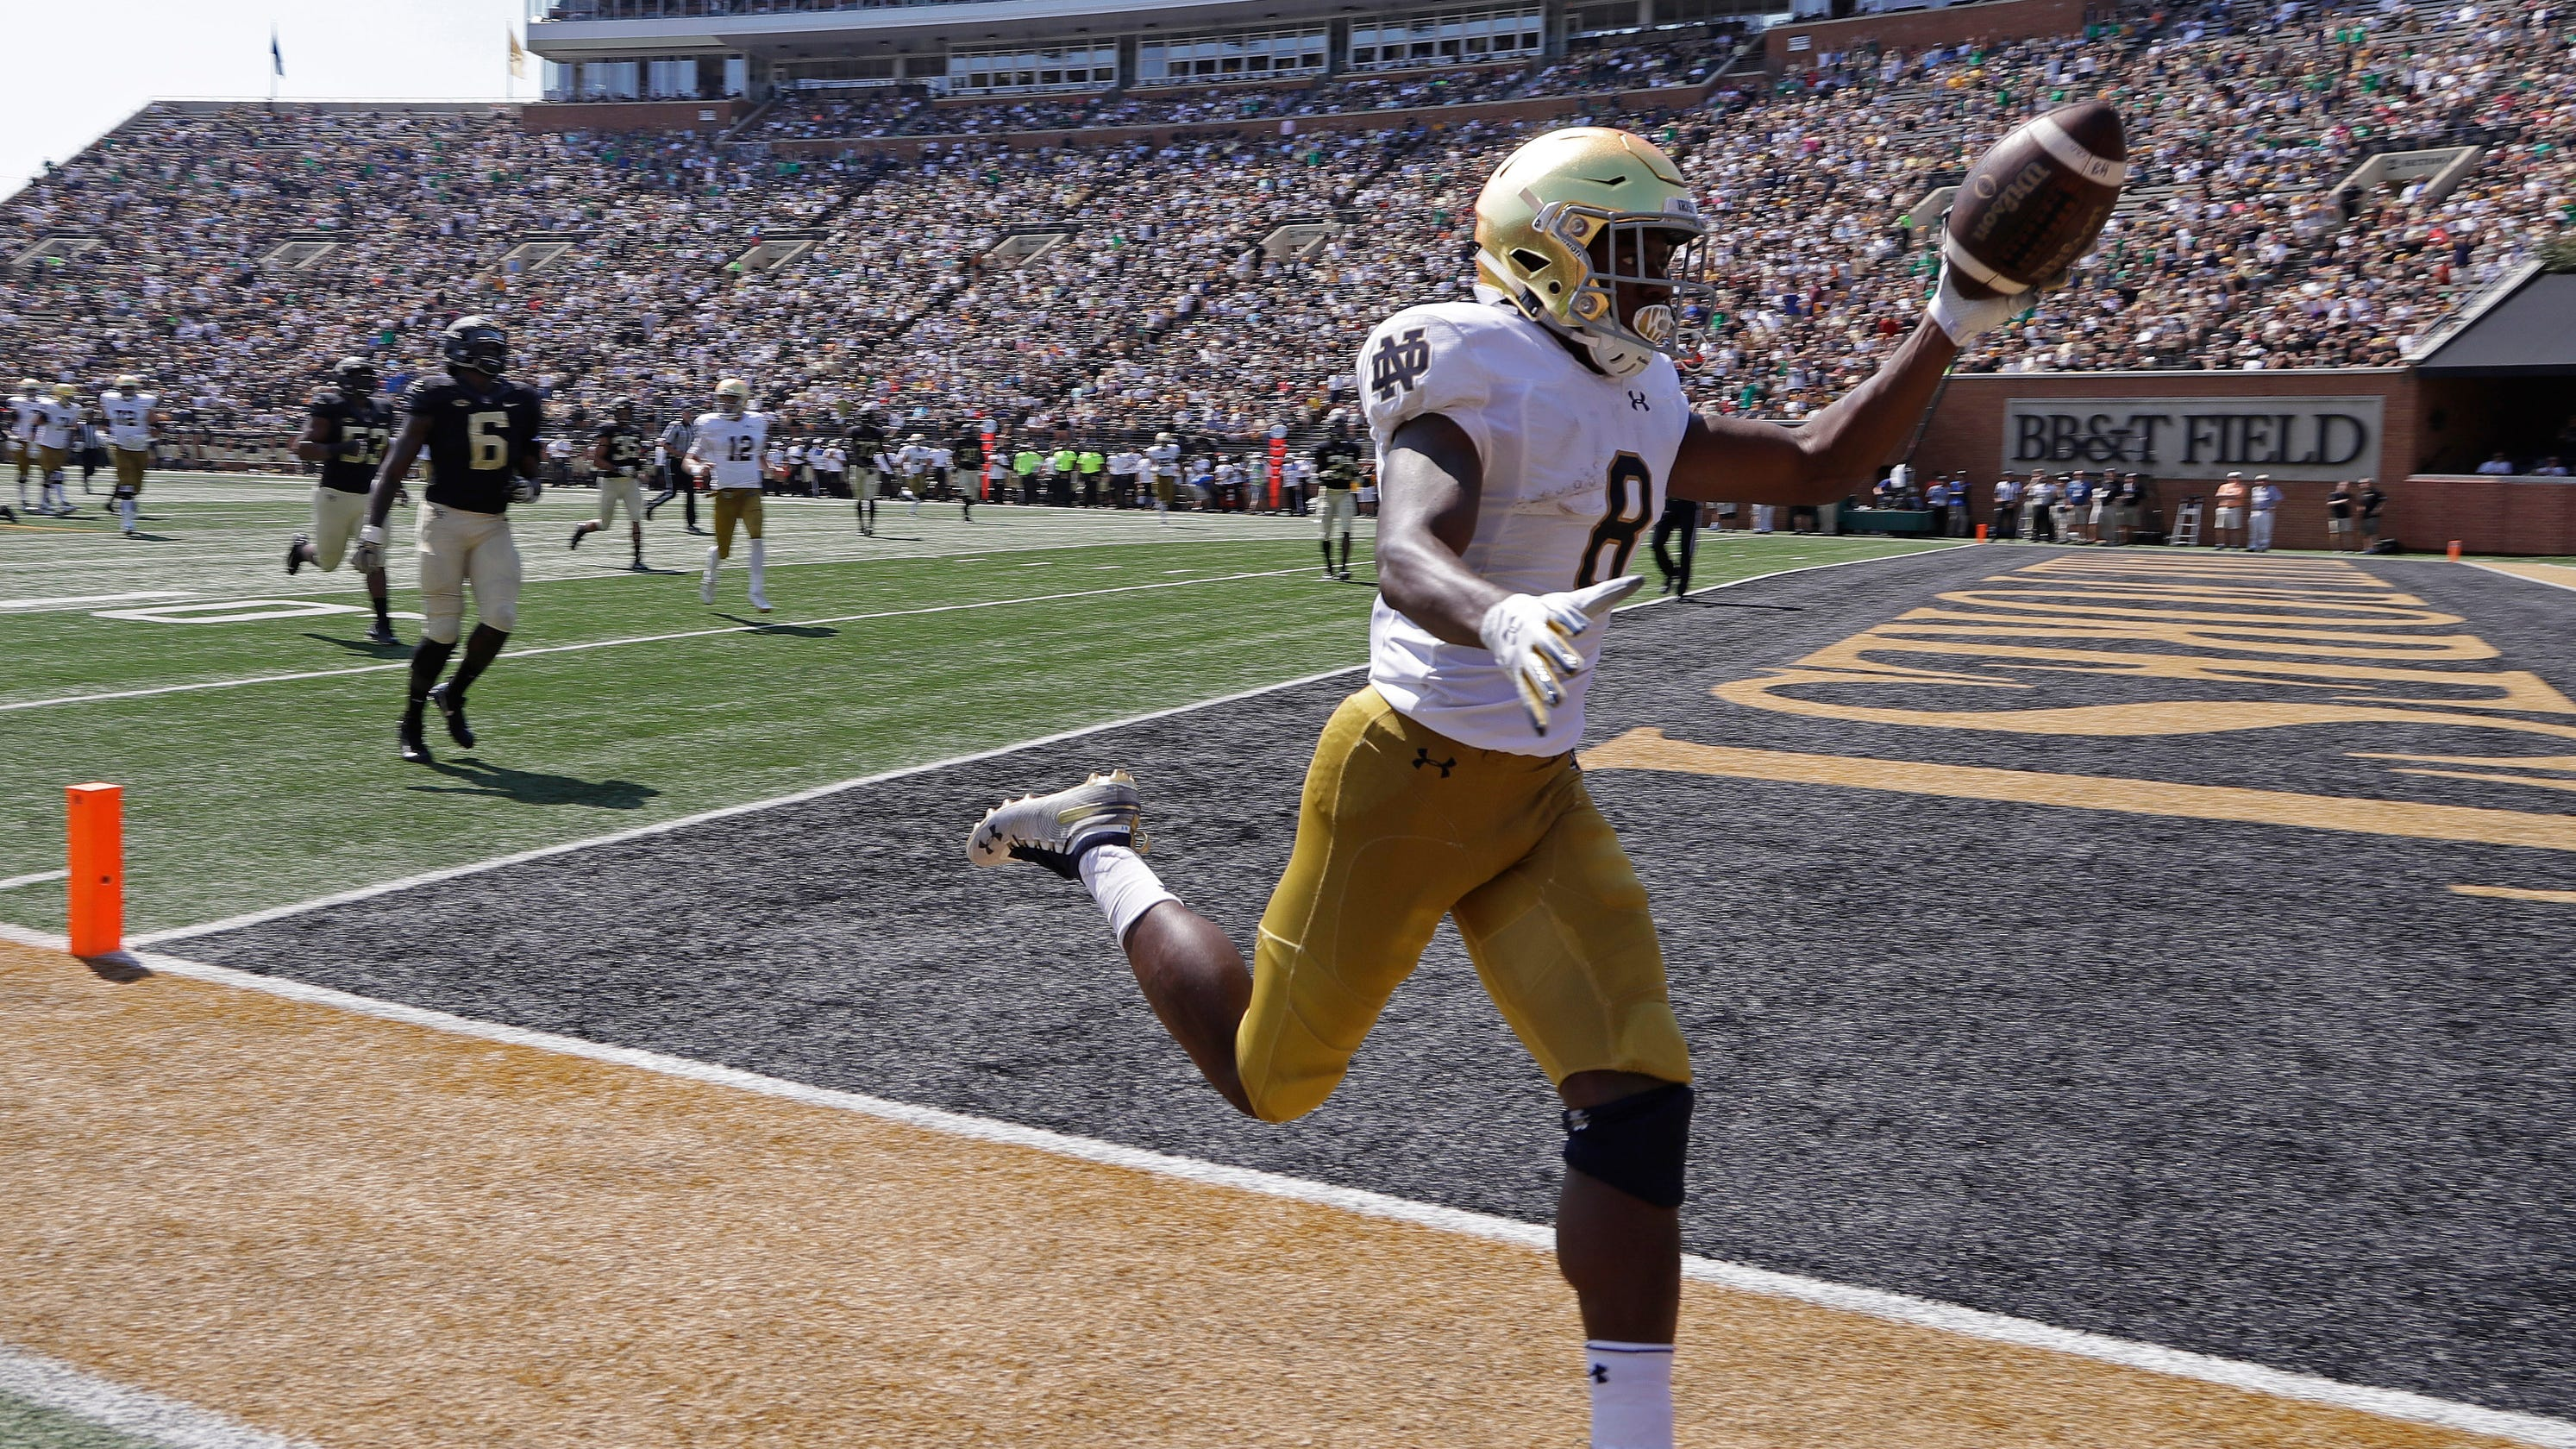 ccb7ea86f Notre Dame football  Who needs to step up for Fighting Irish in 2019